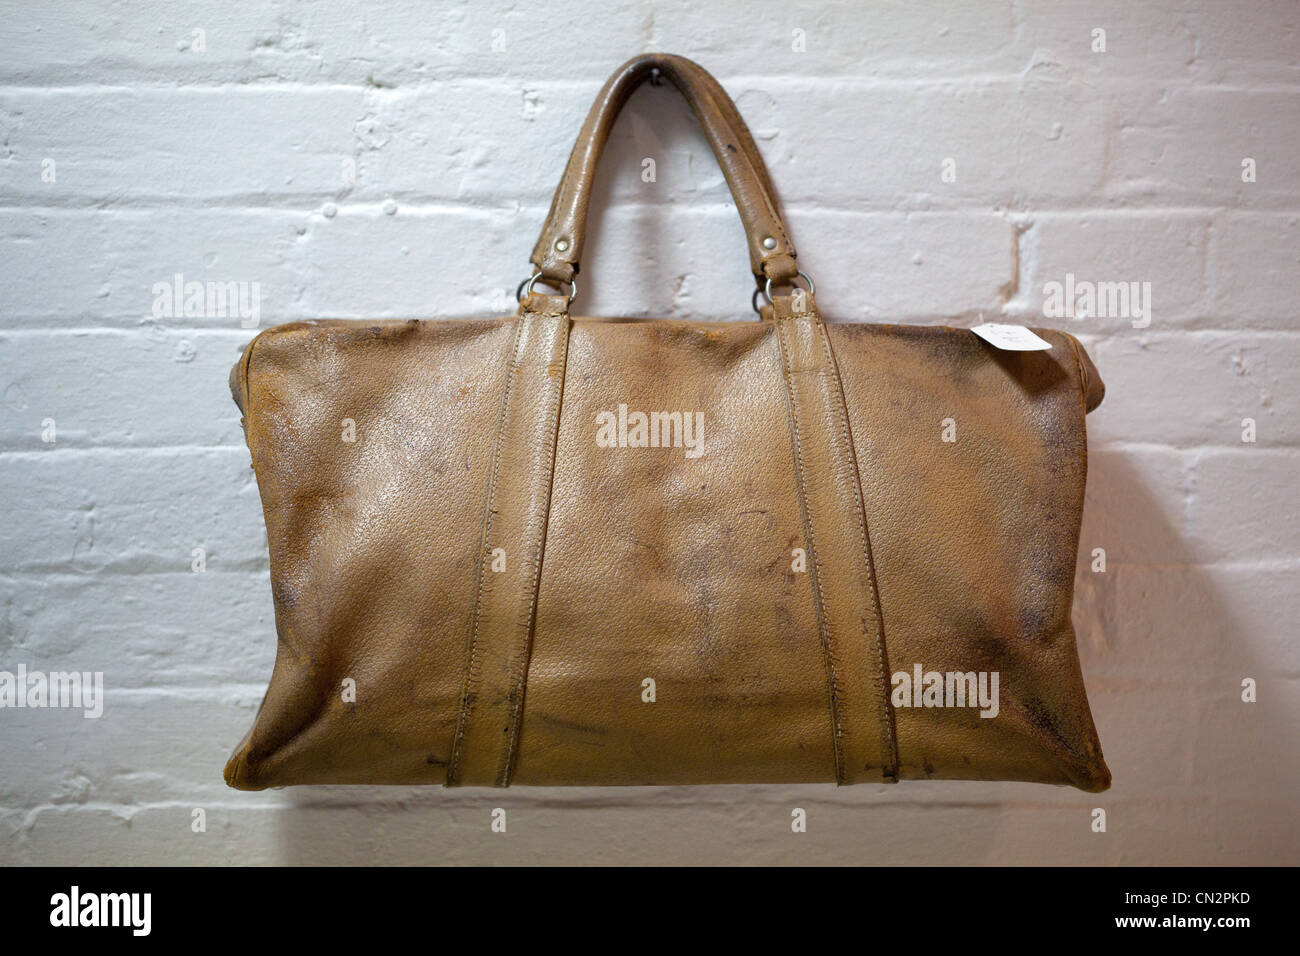 Leather holdall hanging on brick wall - Stock Image